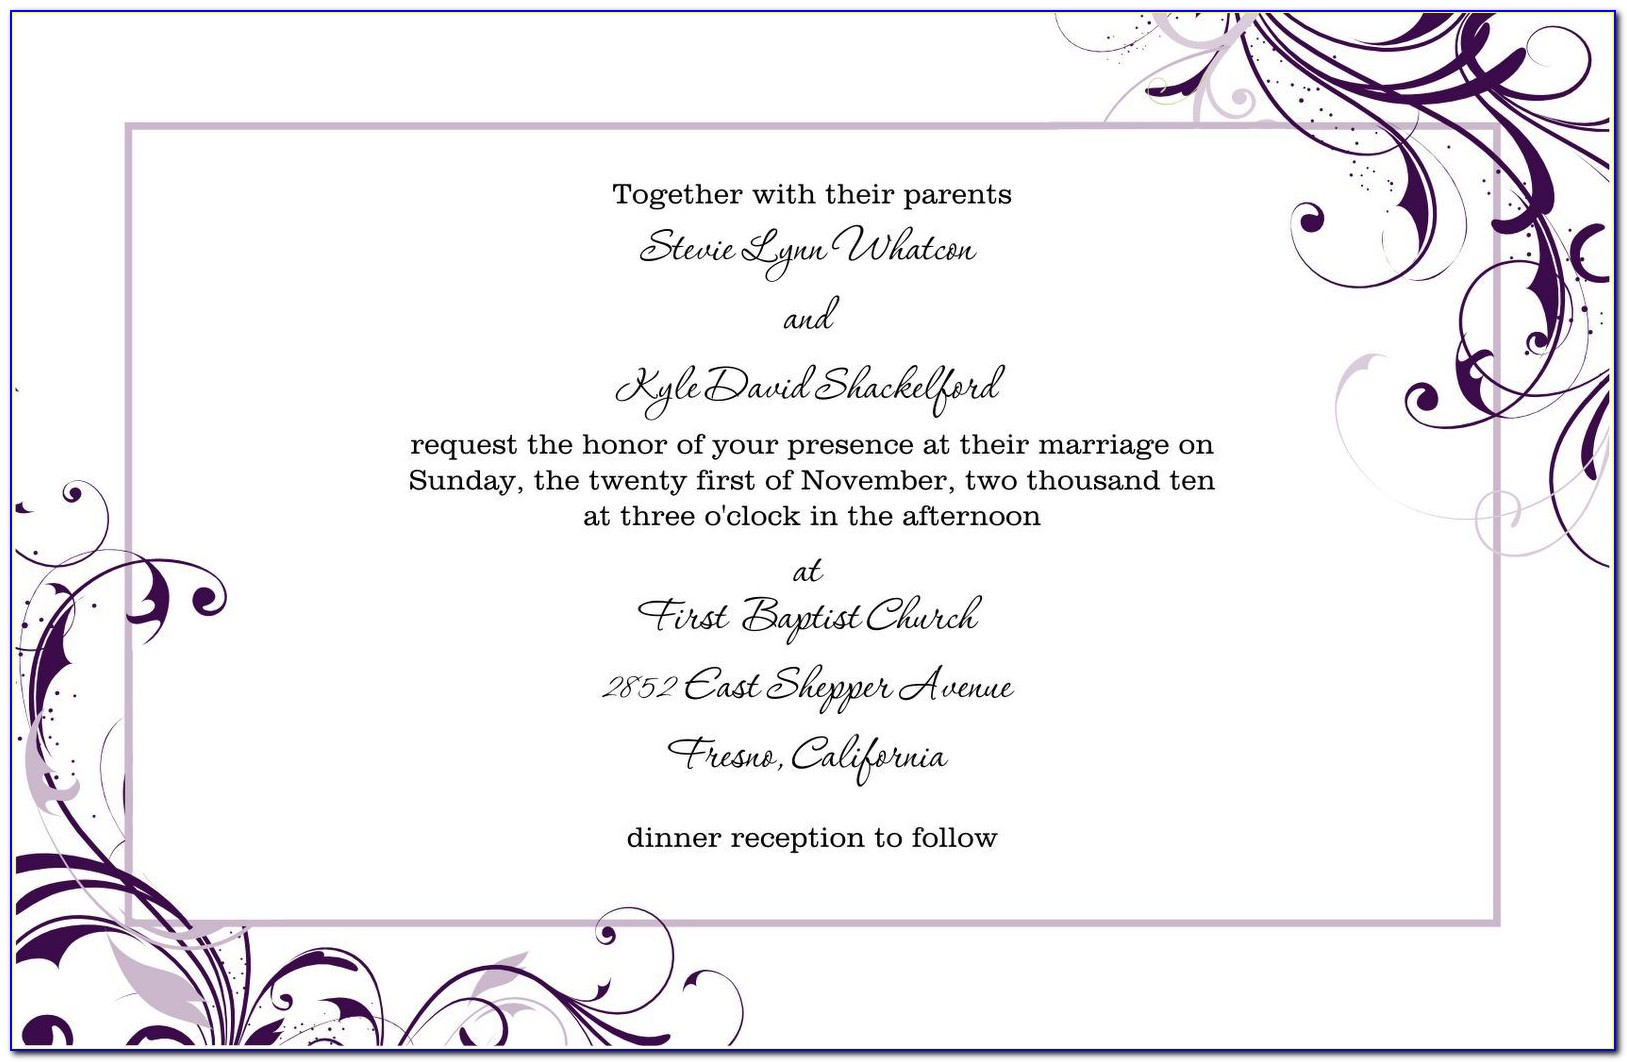 Editable Wedding Reception Invitation Templates Free Download